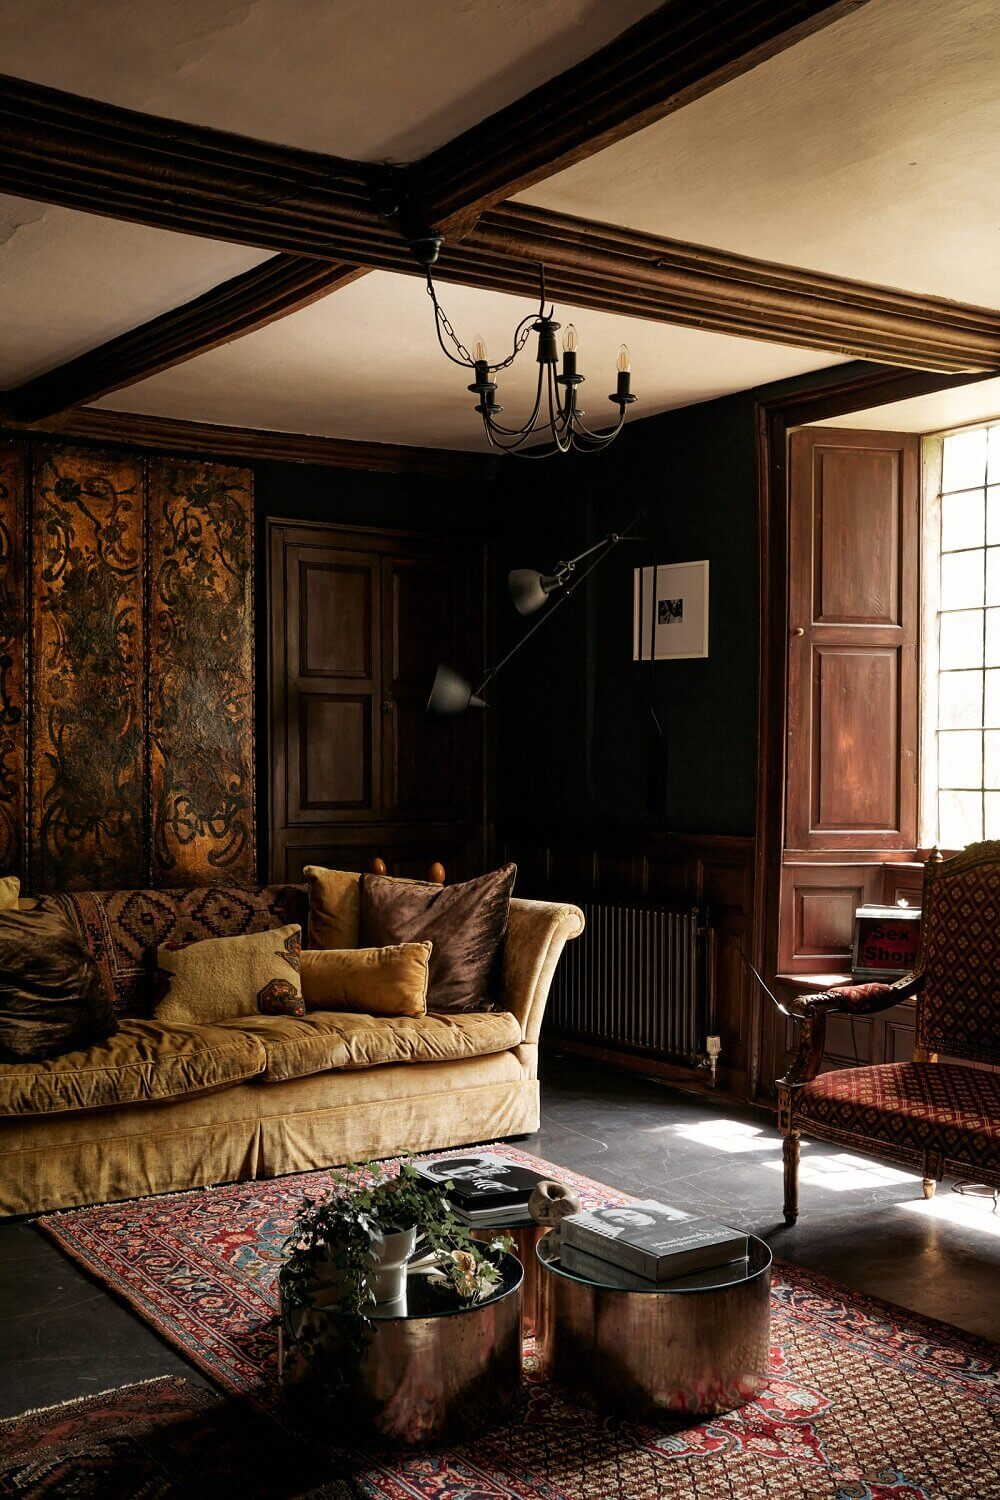 An English Country House with Historic Features